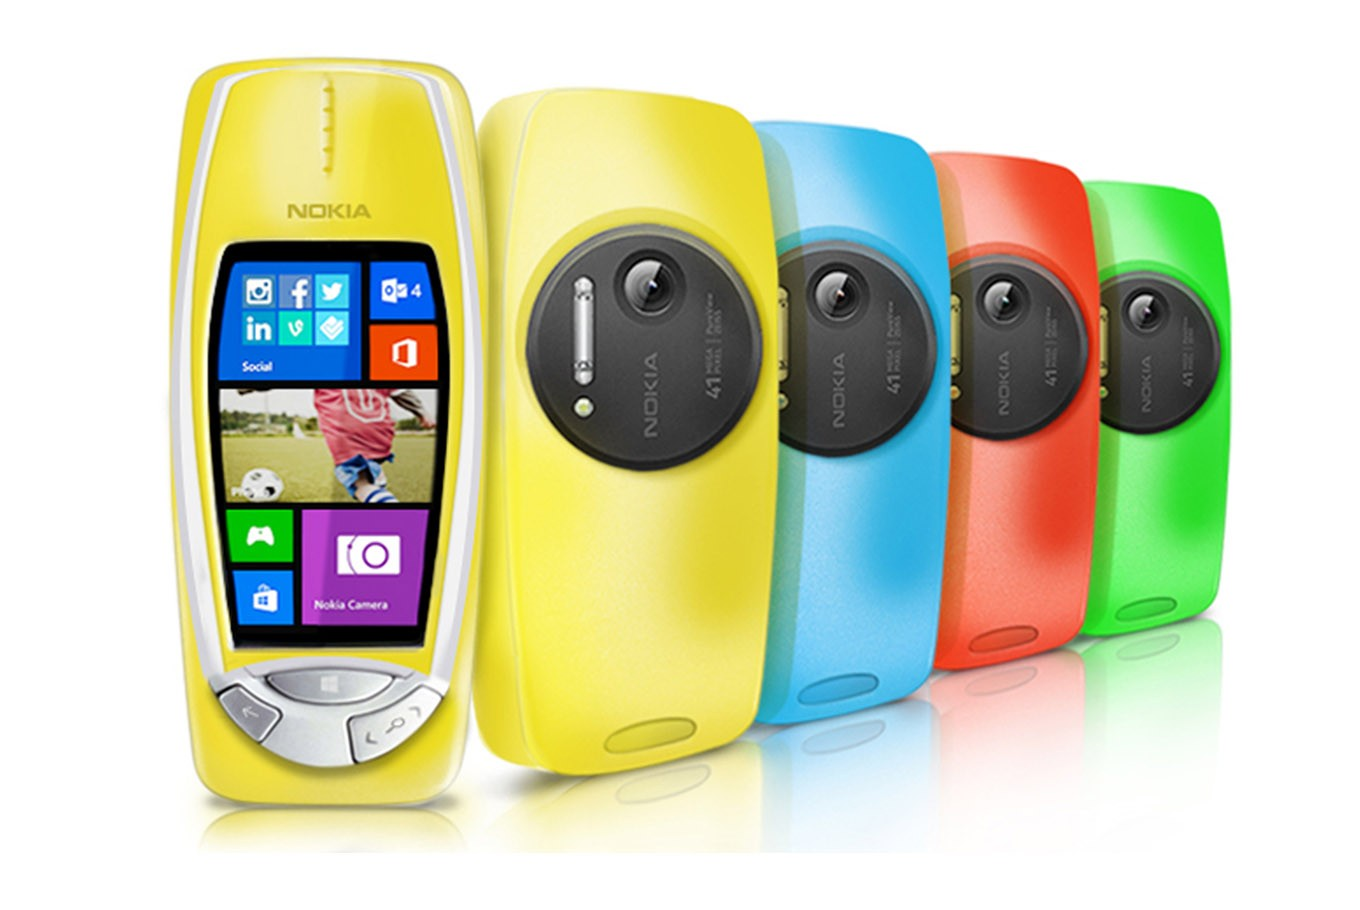 Sources say Nokia 3310 to be revived